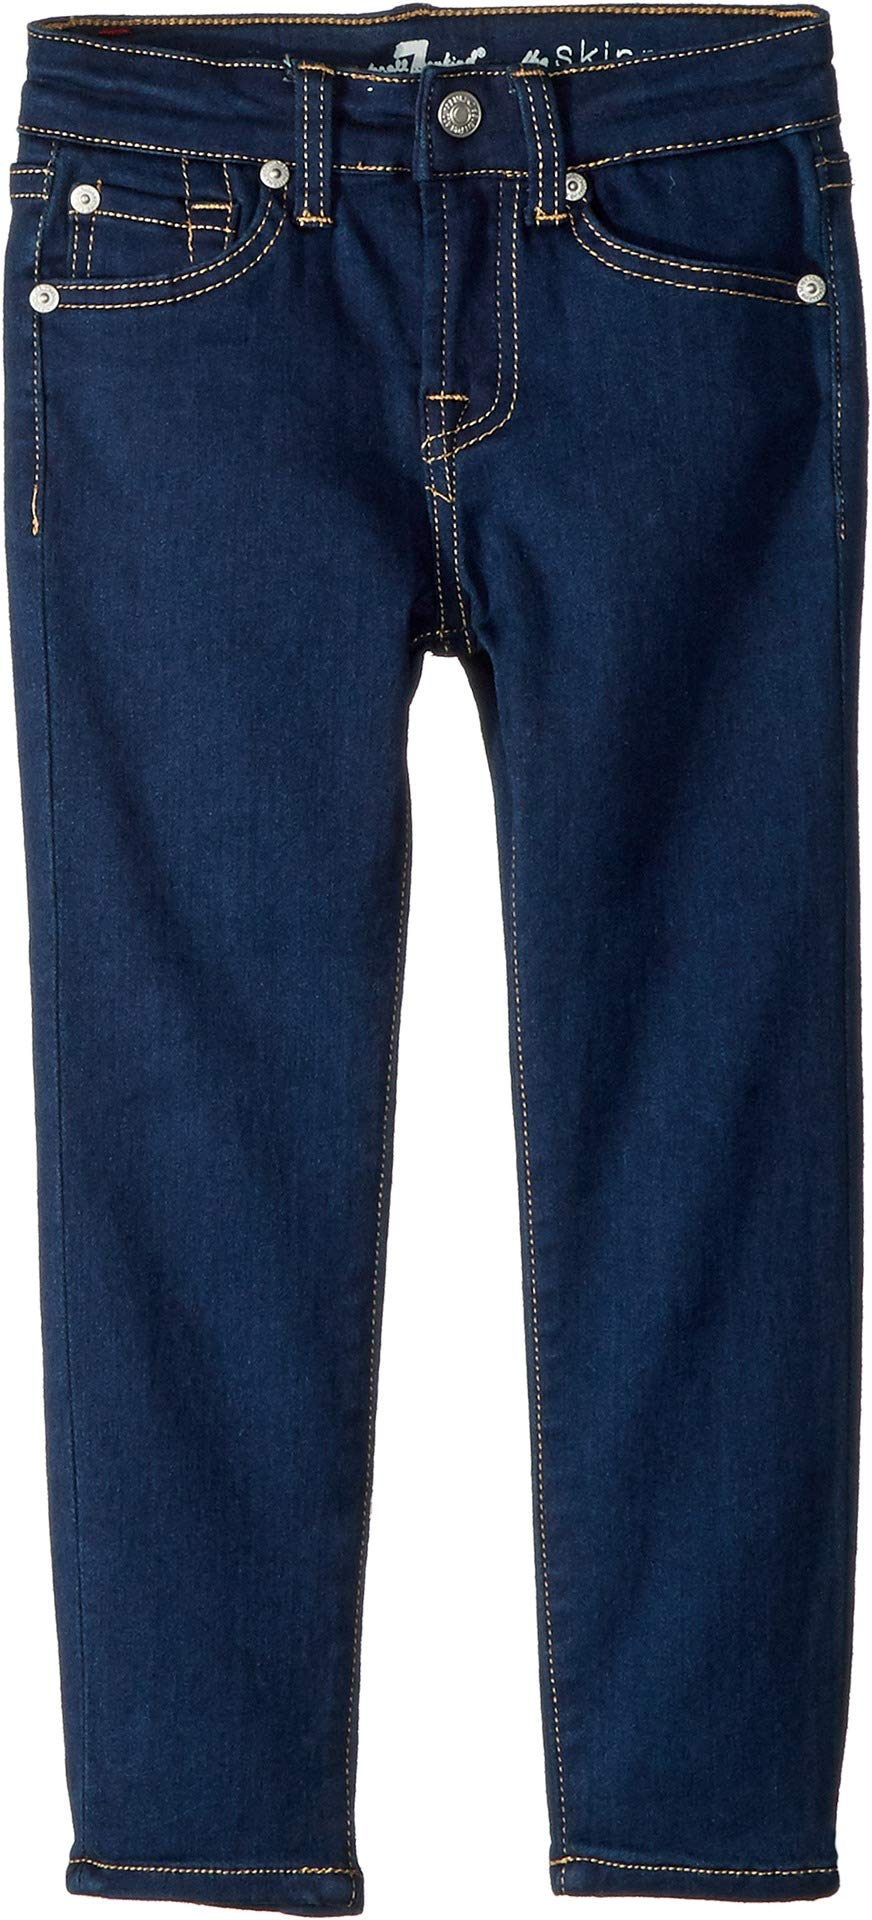 7 For All Mankind Kids Girl's Skinny Jeans in Rinsed Indigo (Little Kids) Rinsed Indigo 4 US Little Kid